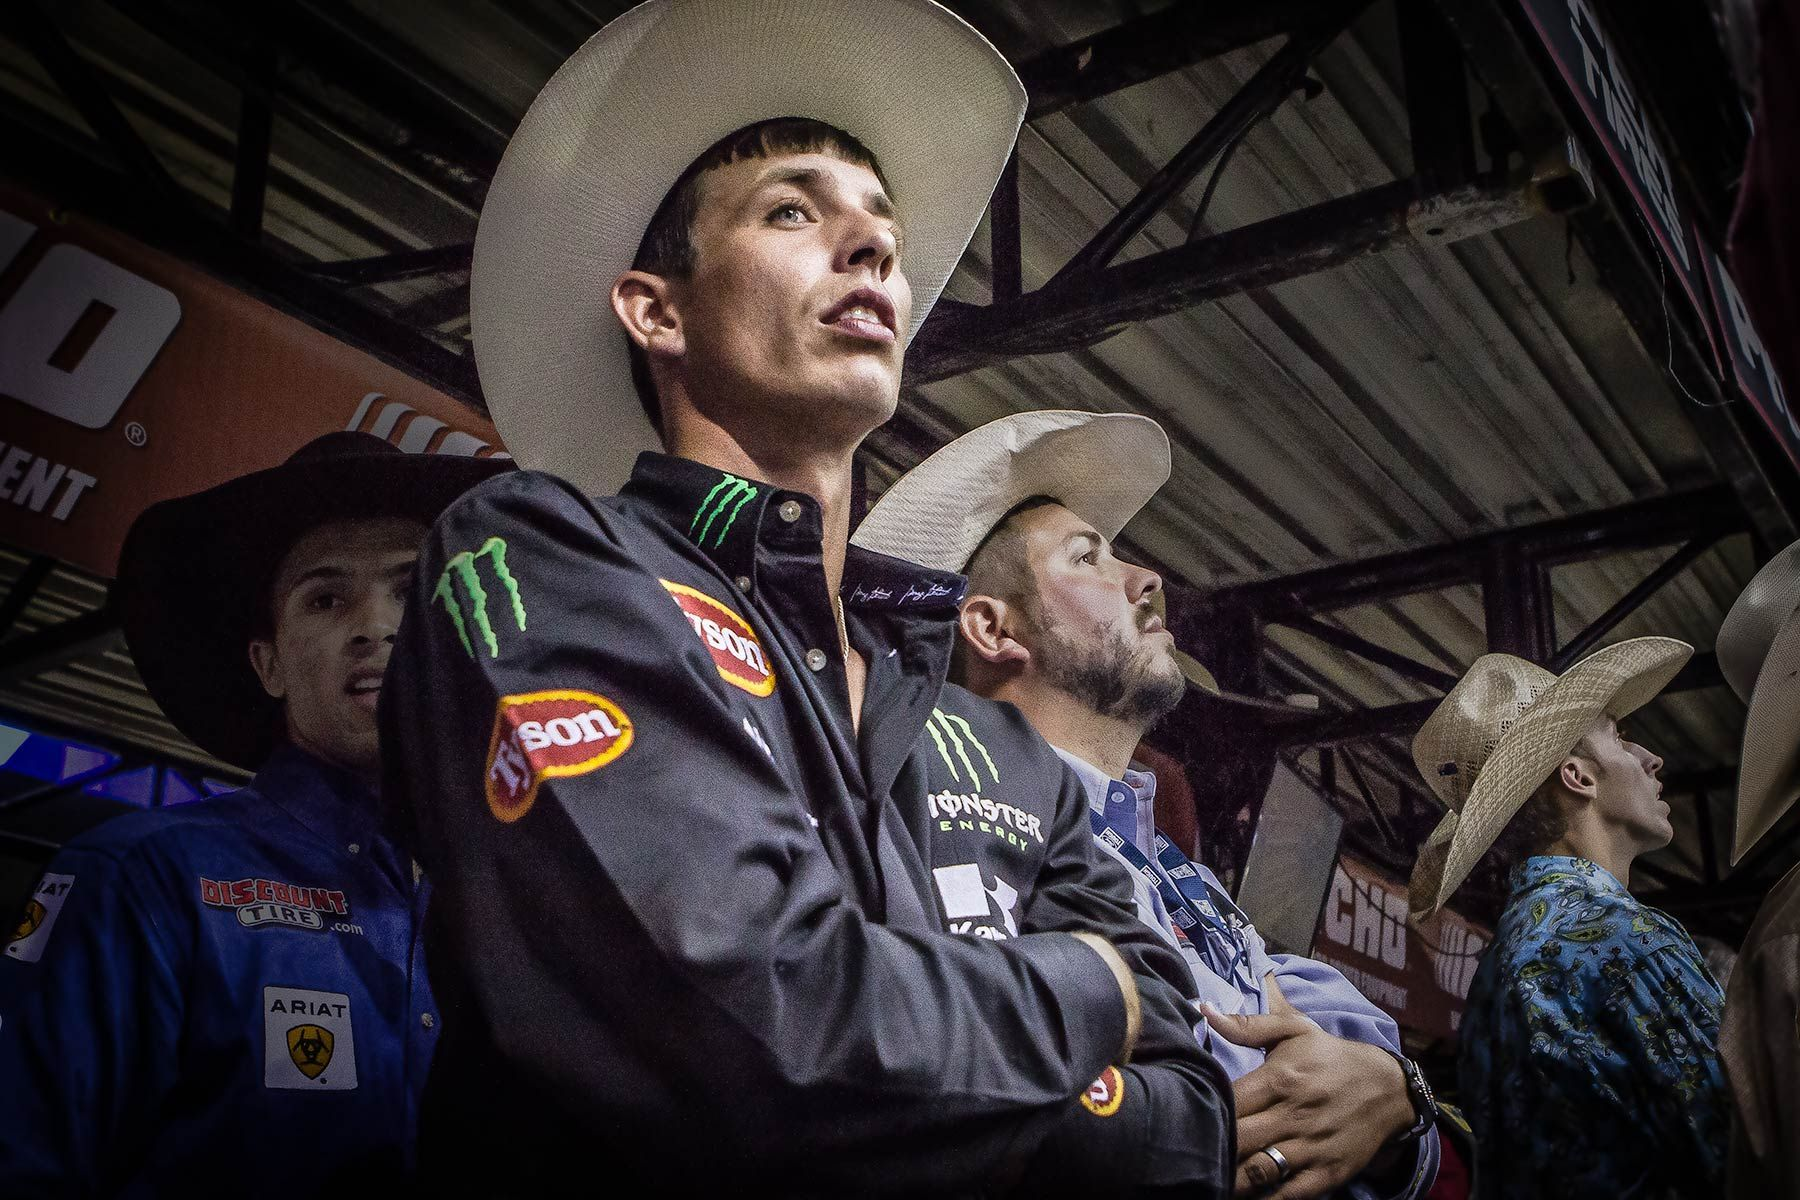 PBR Bull Rider waiting his turn